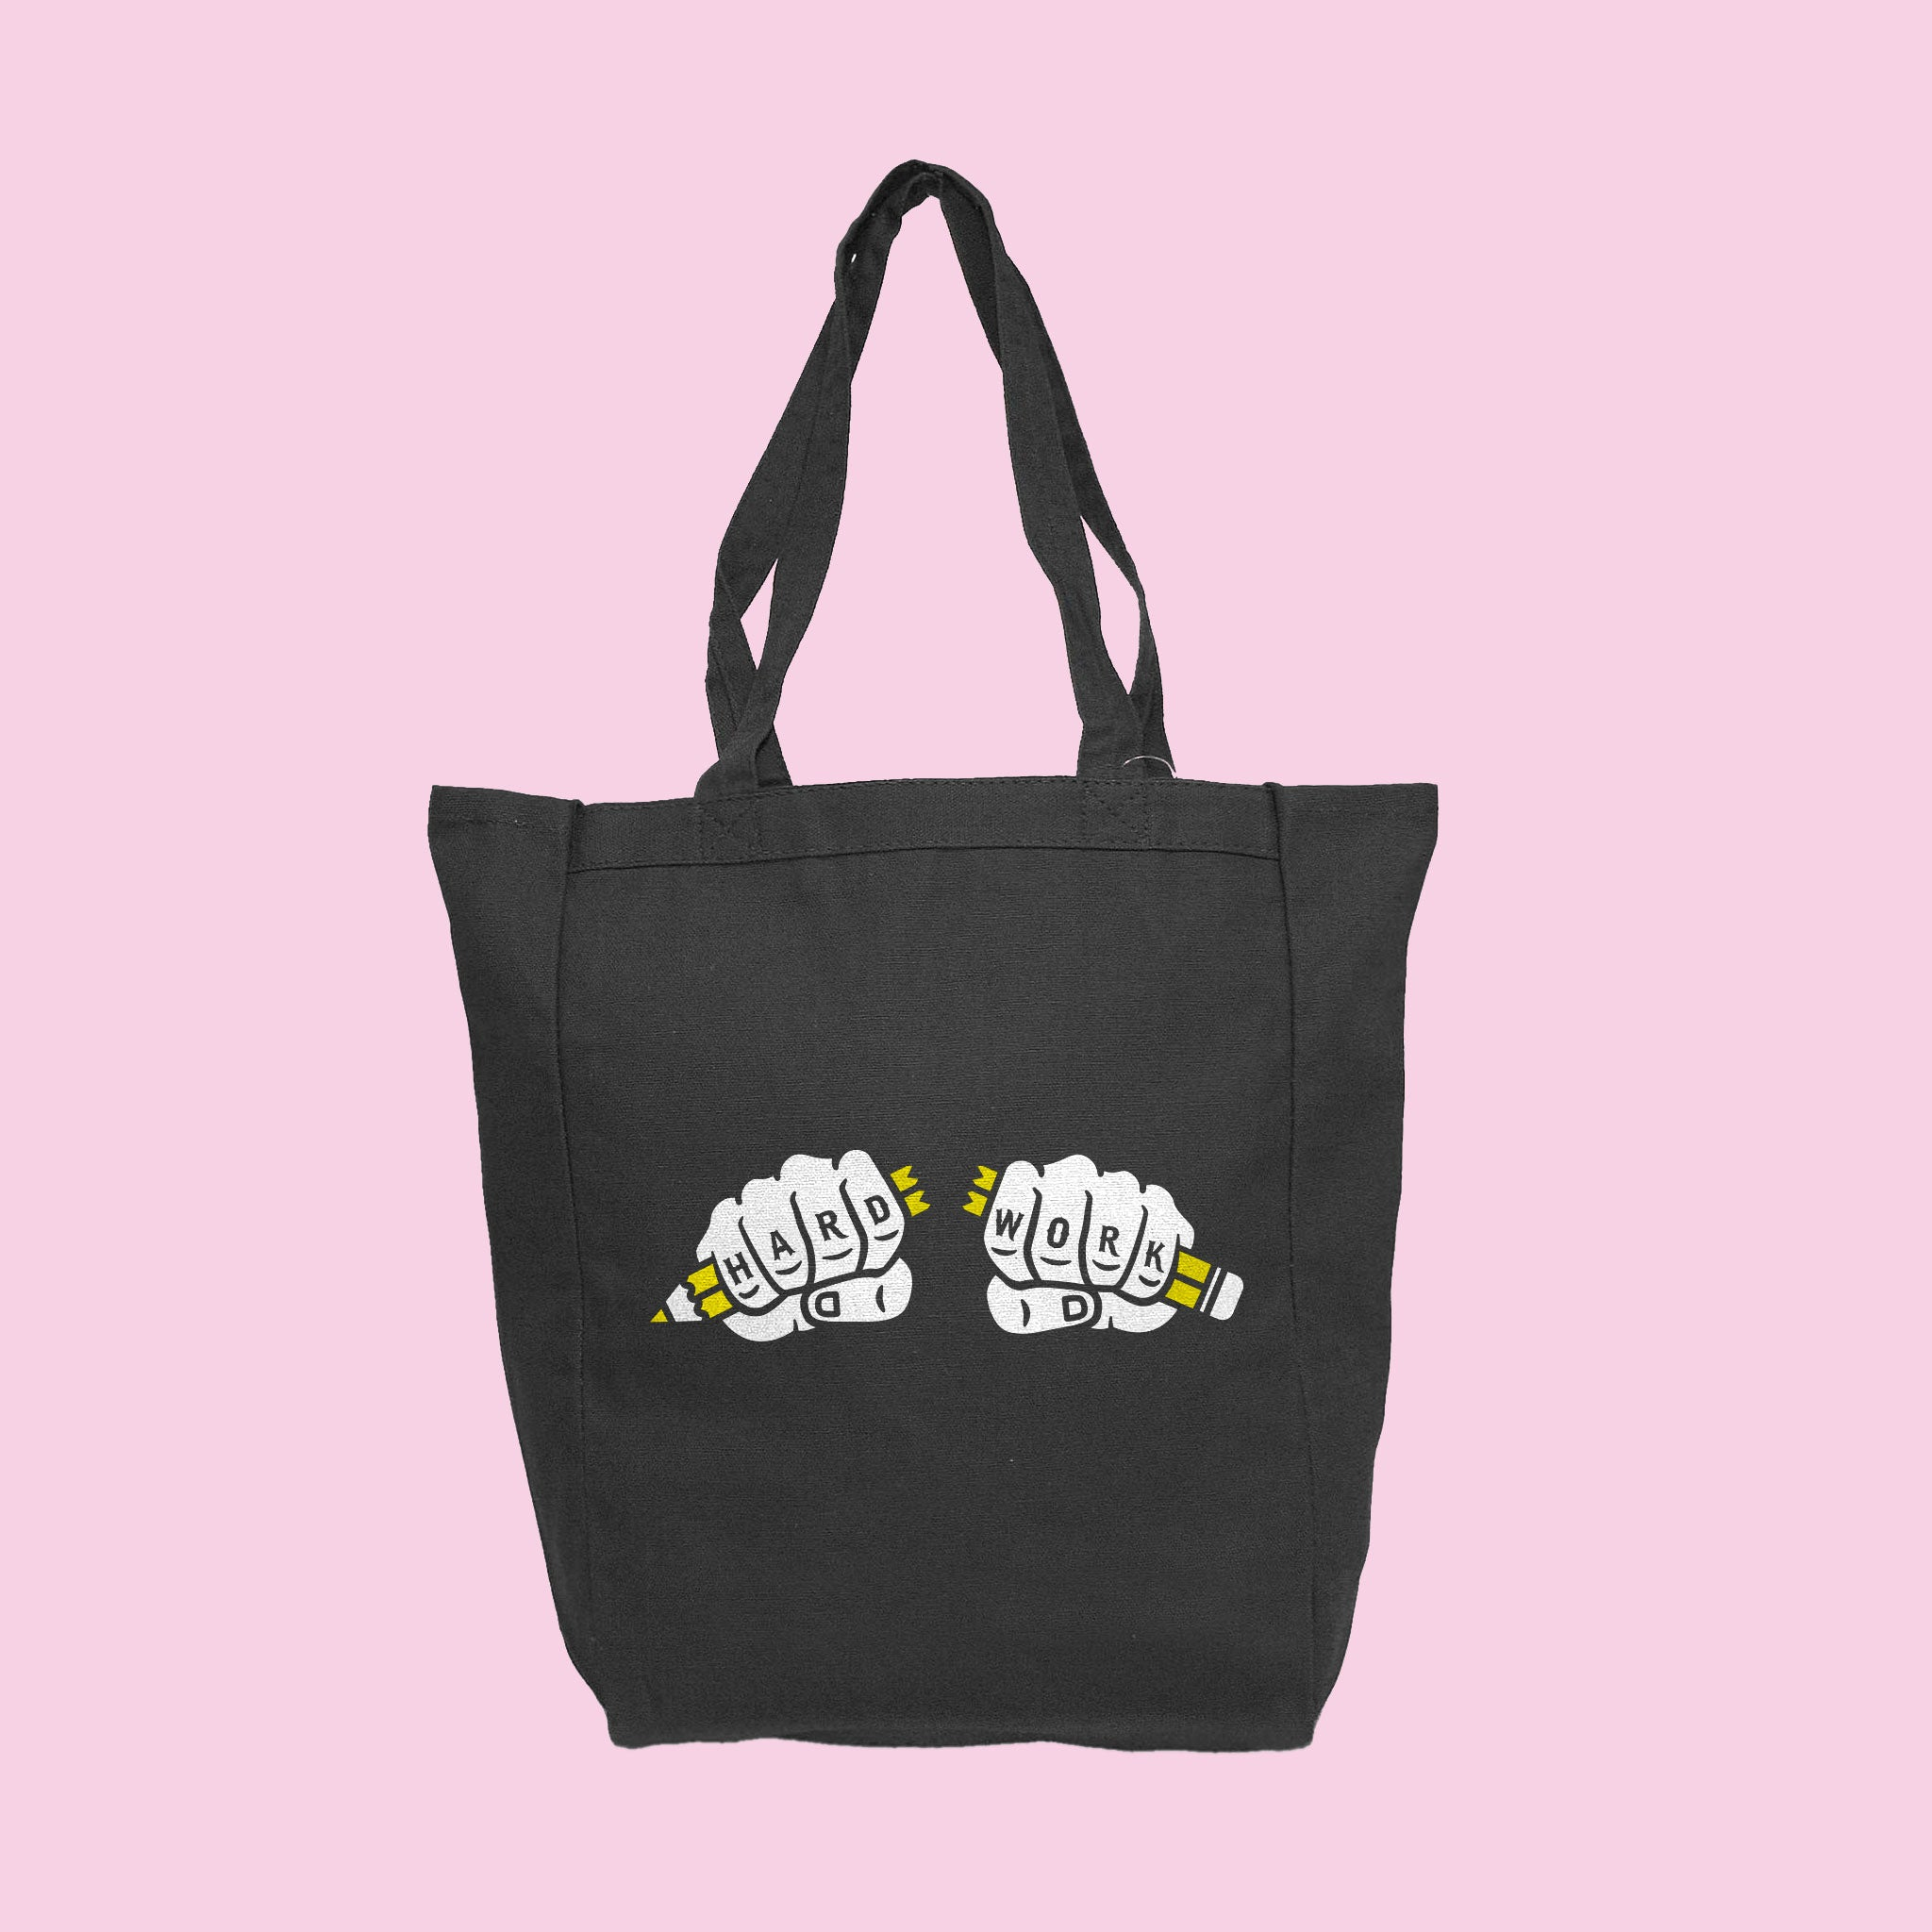 Hard Work Tote Bag